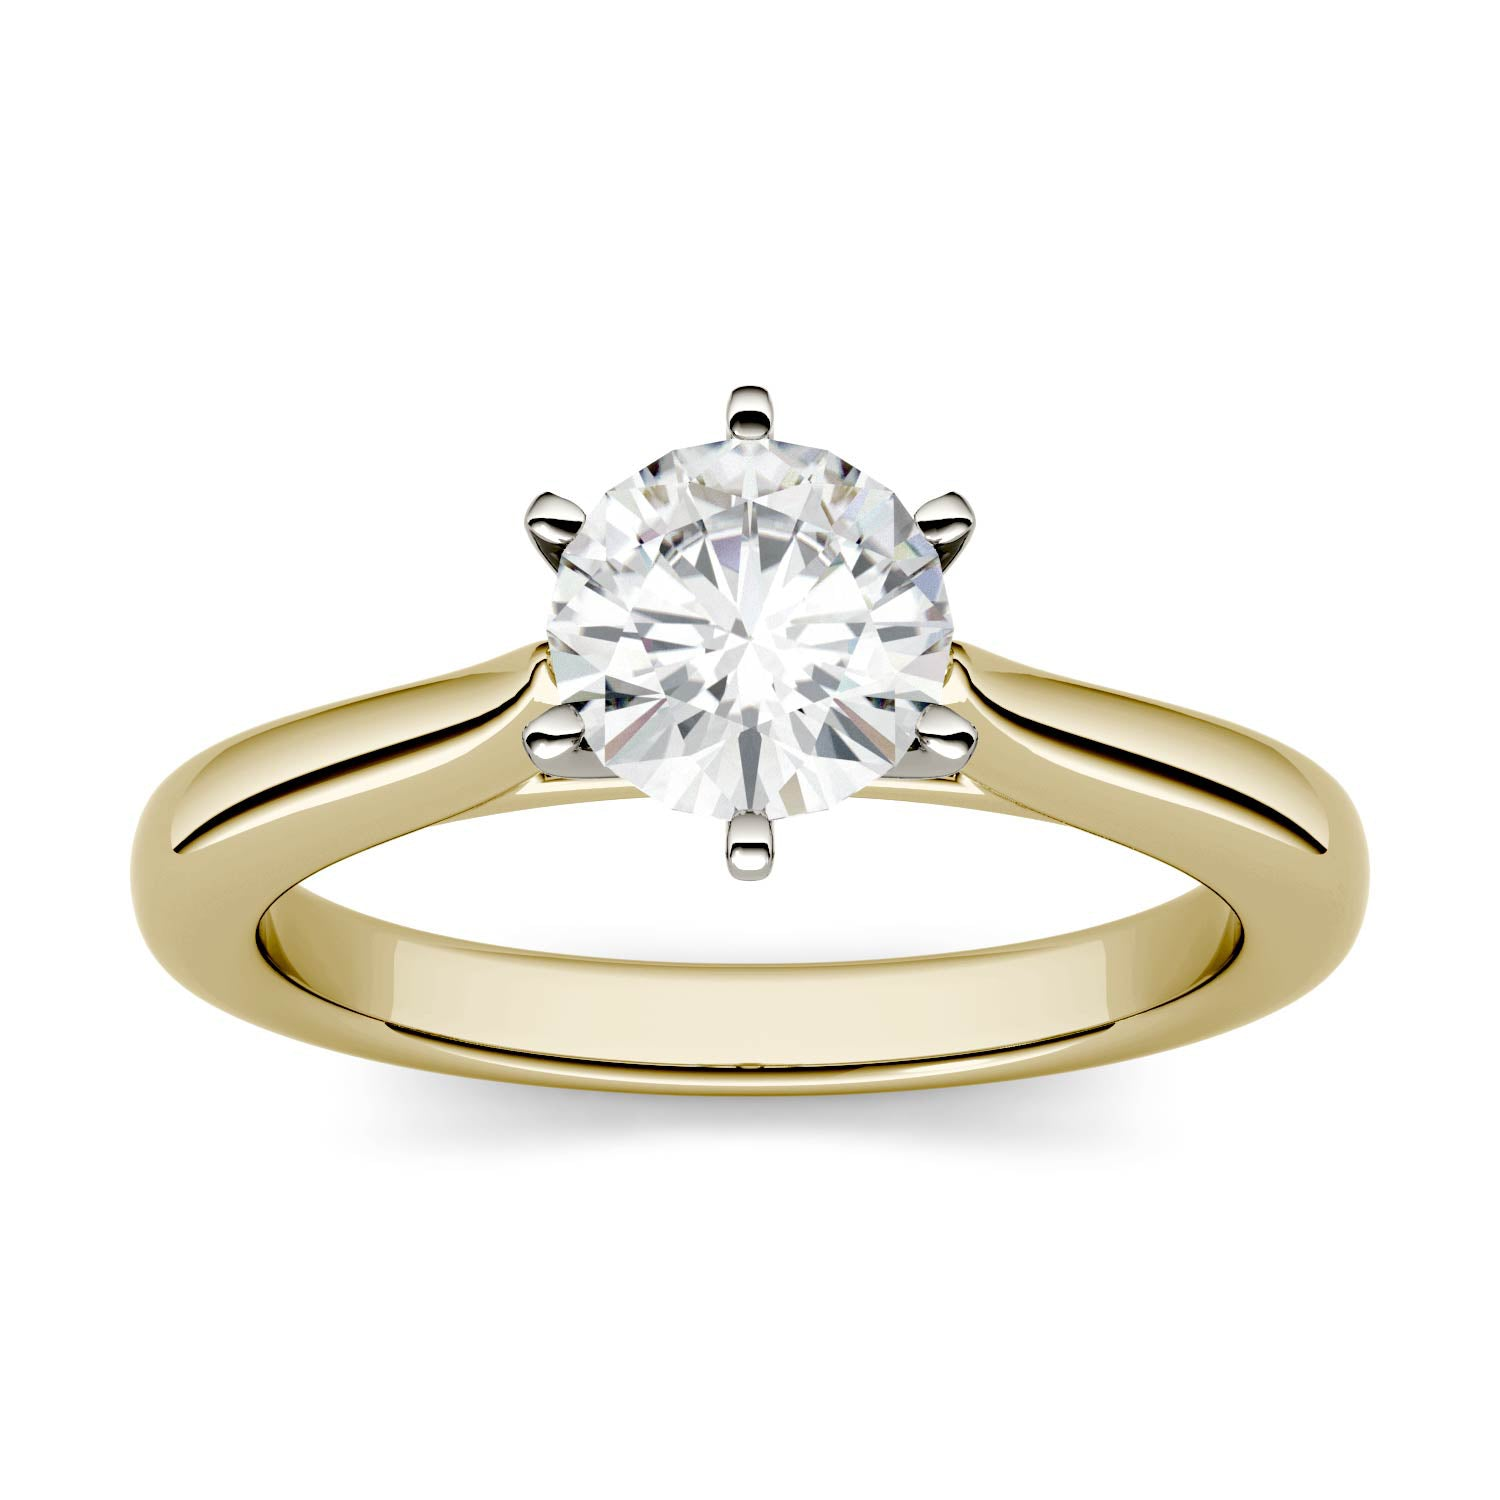 Charles & Colvard Moissanite Solitaire Engagement Ring in Two-tone Gold-612935 - Jewelry by Johan